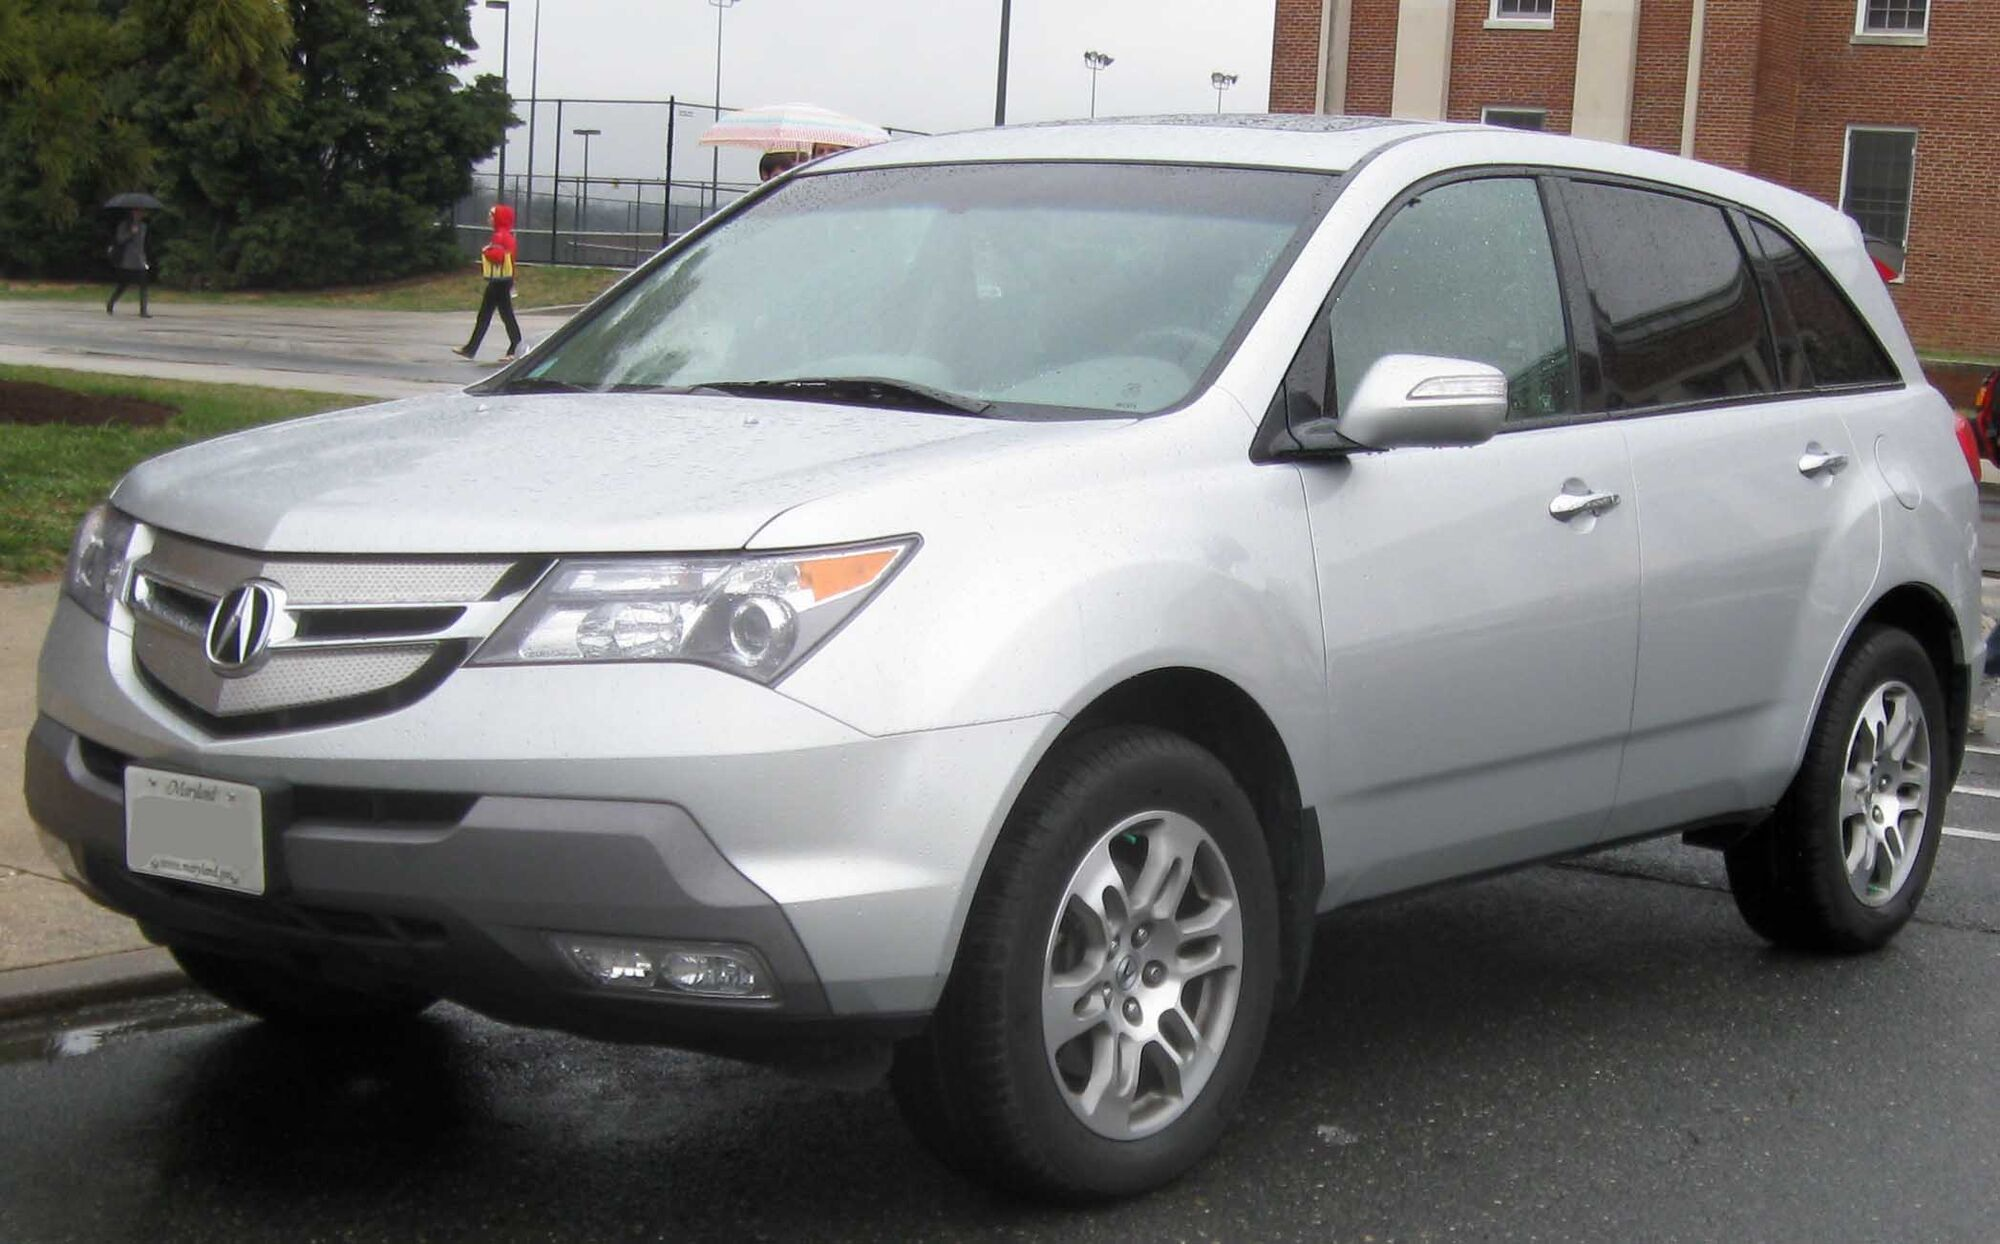 sale muller beautiful mdx for hoffman in acura il woodfield estates s of